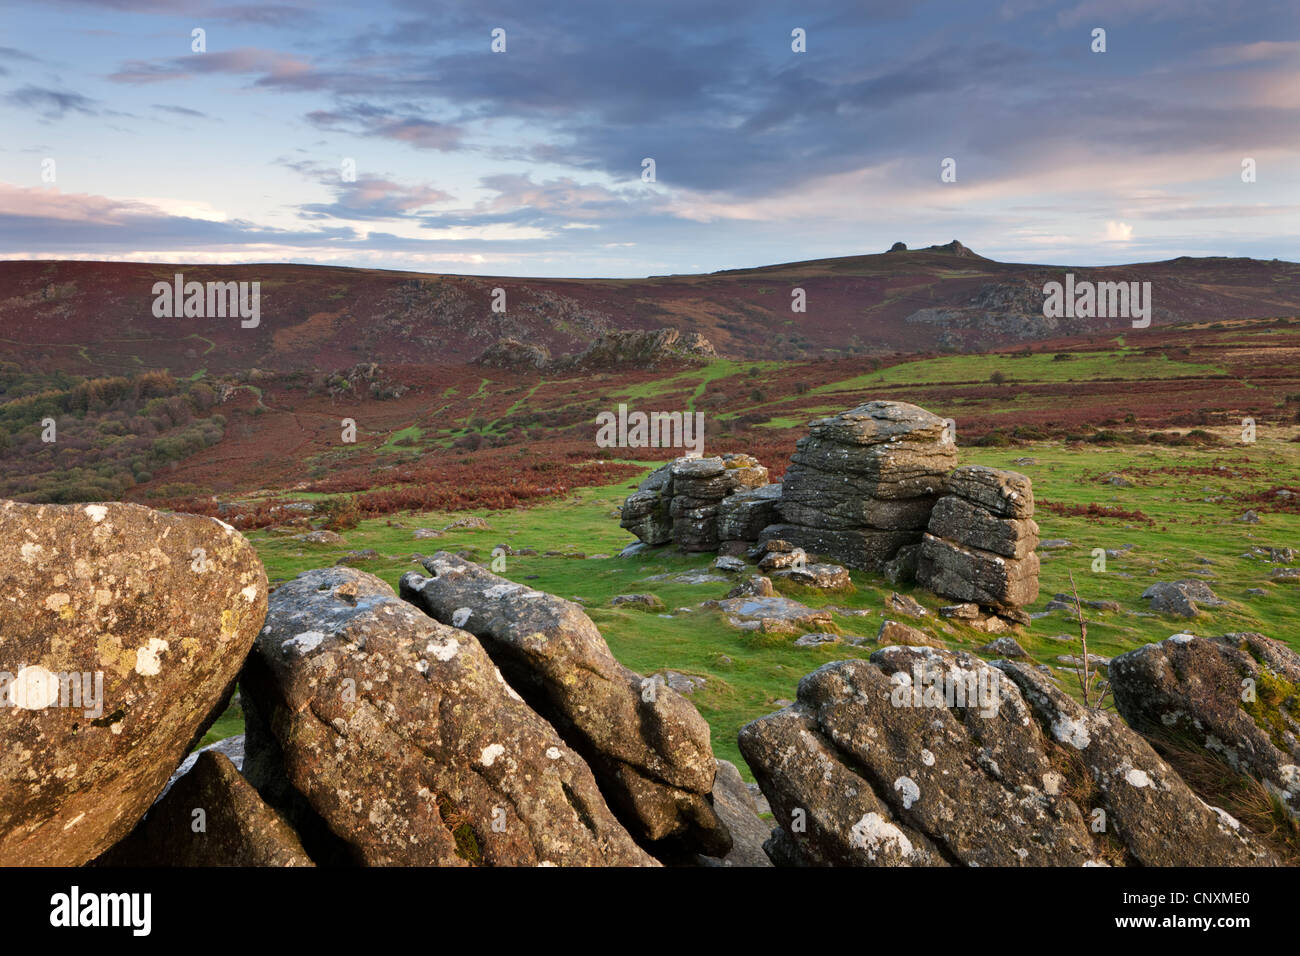 Views to Haytor from Hound Tor, Dartmoor, Devon, England. Autumn (October) 2011. - Stock Image